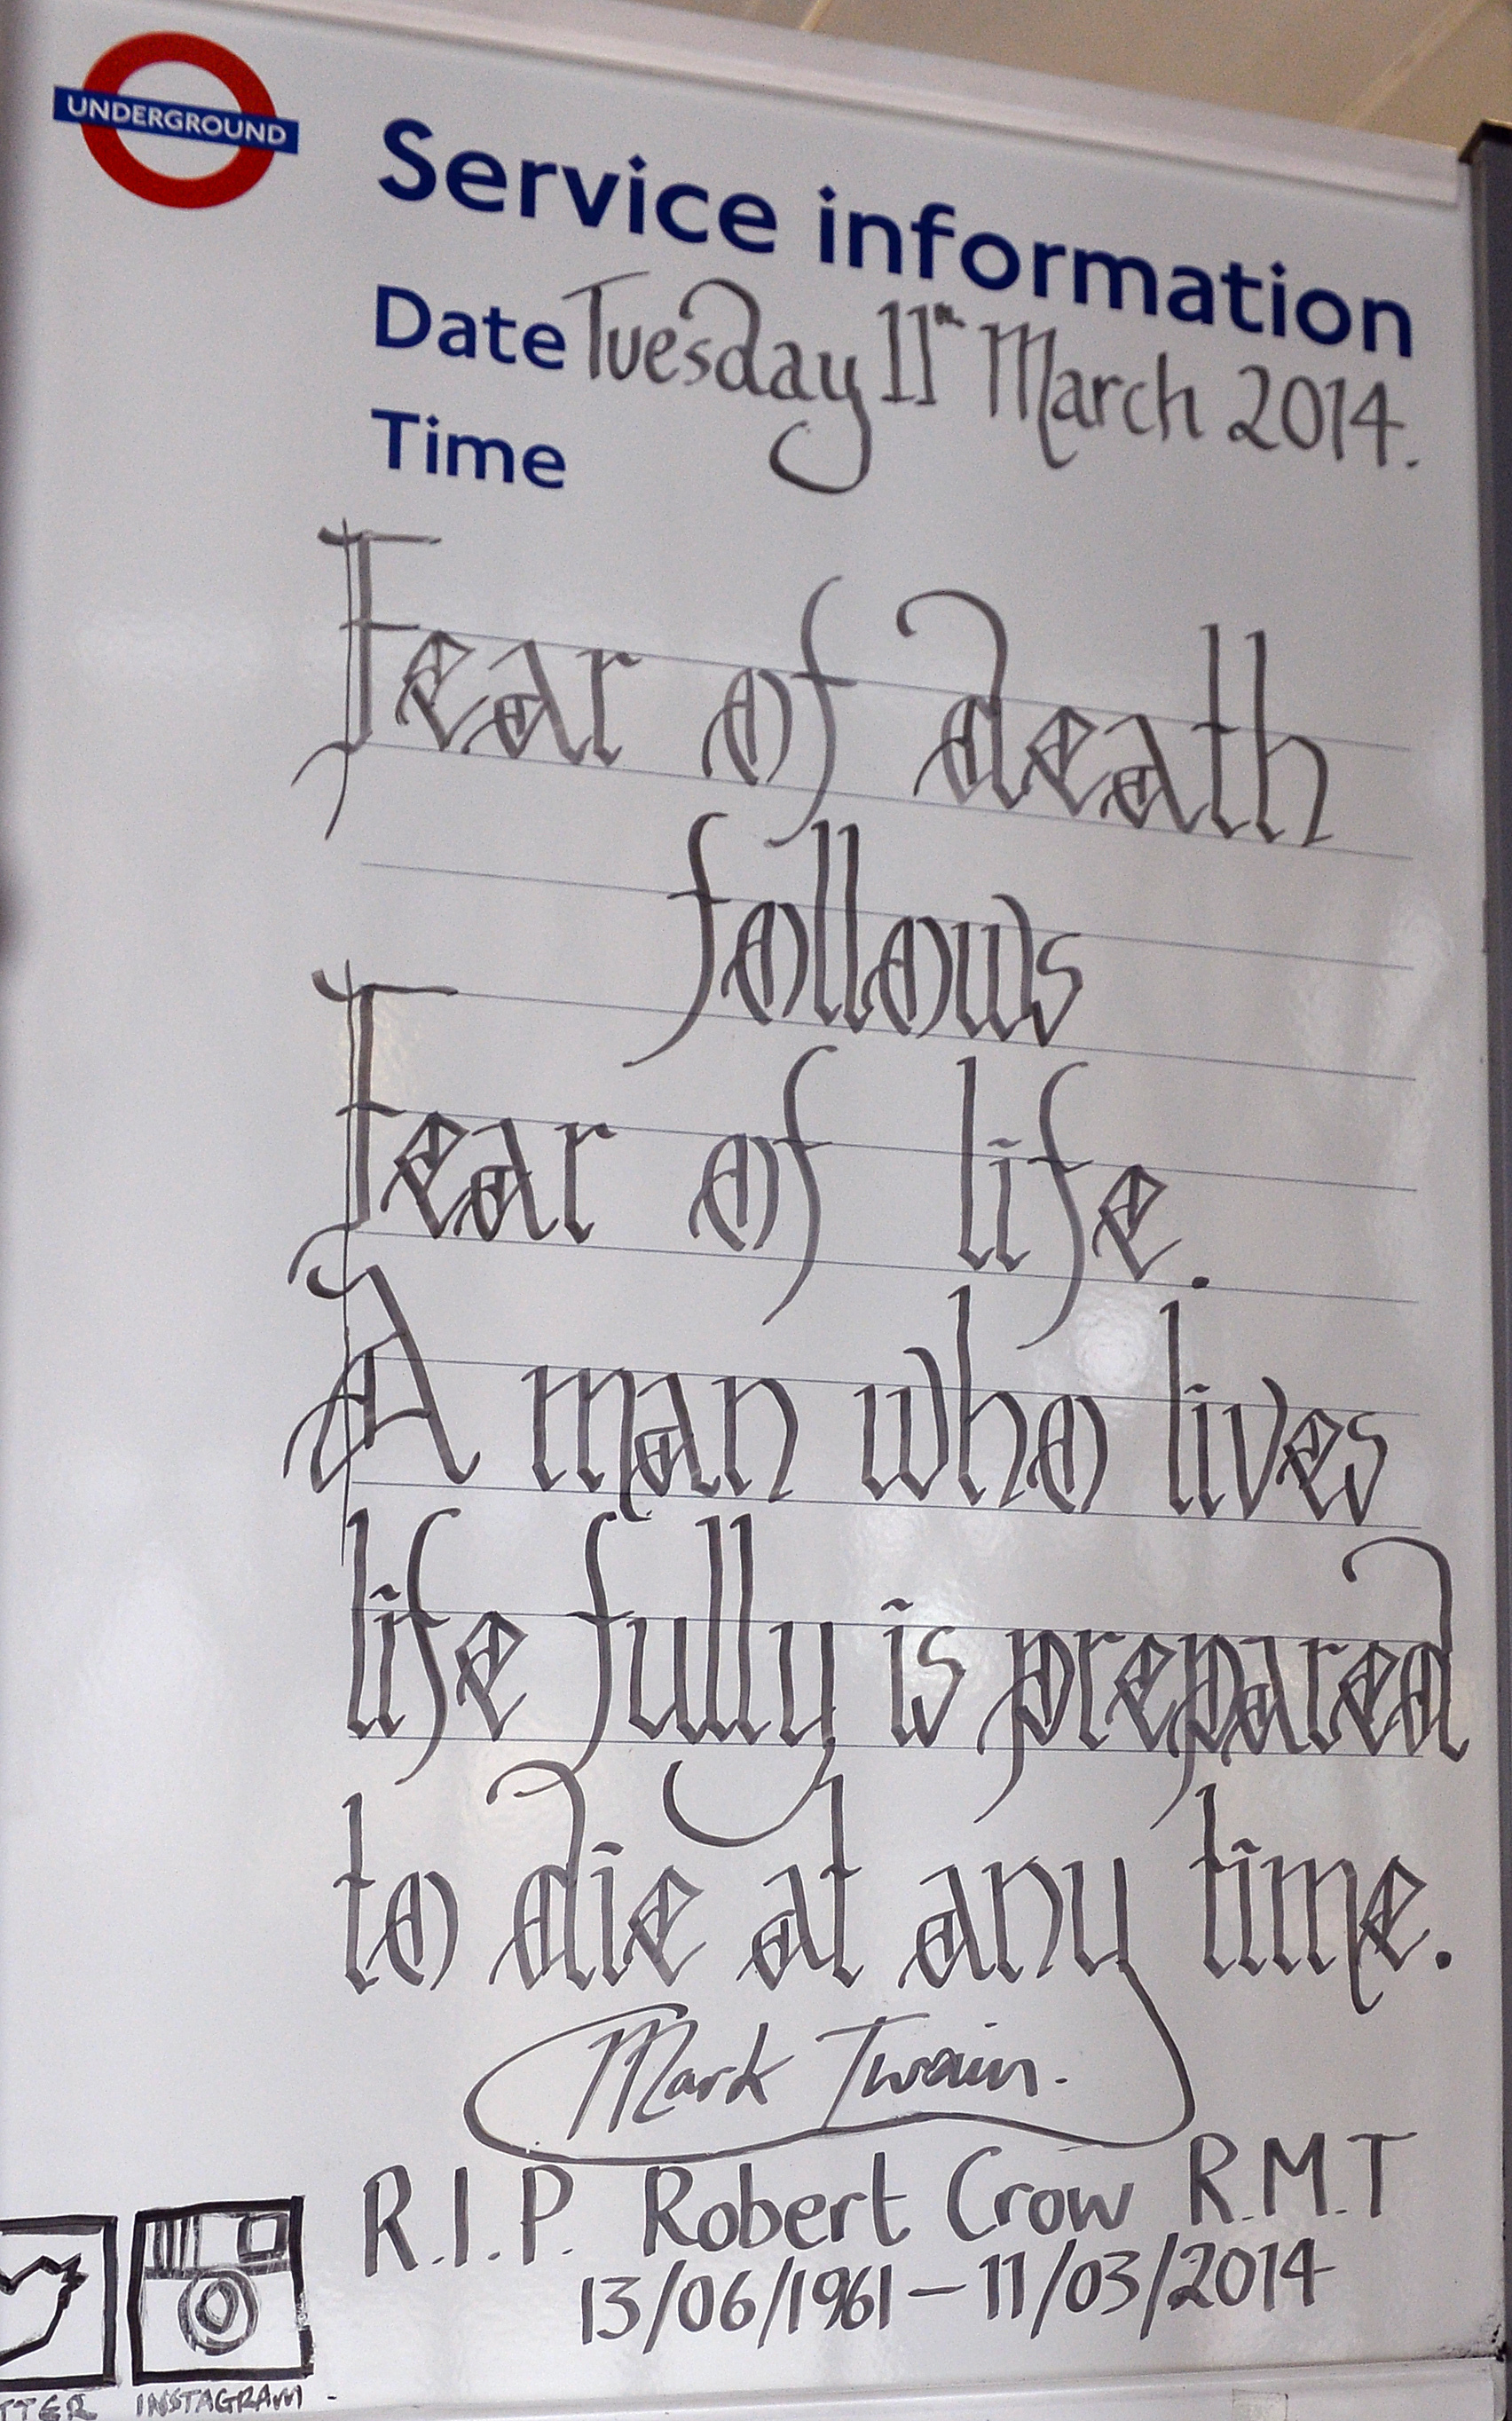 London Underground staff pay tribute to Bob Crow with sign at Covent Garden tube station